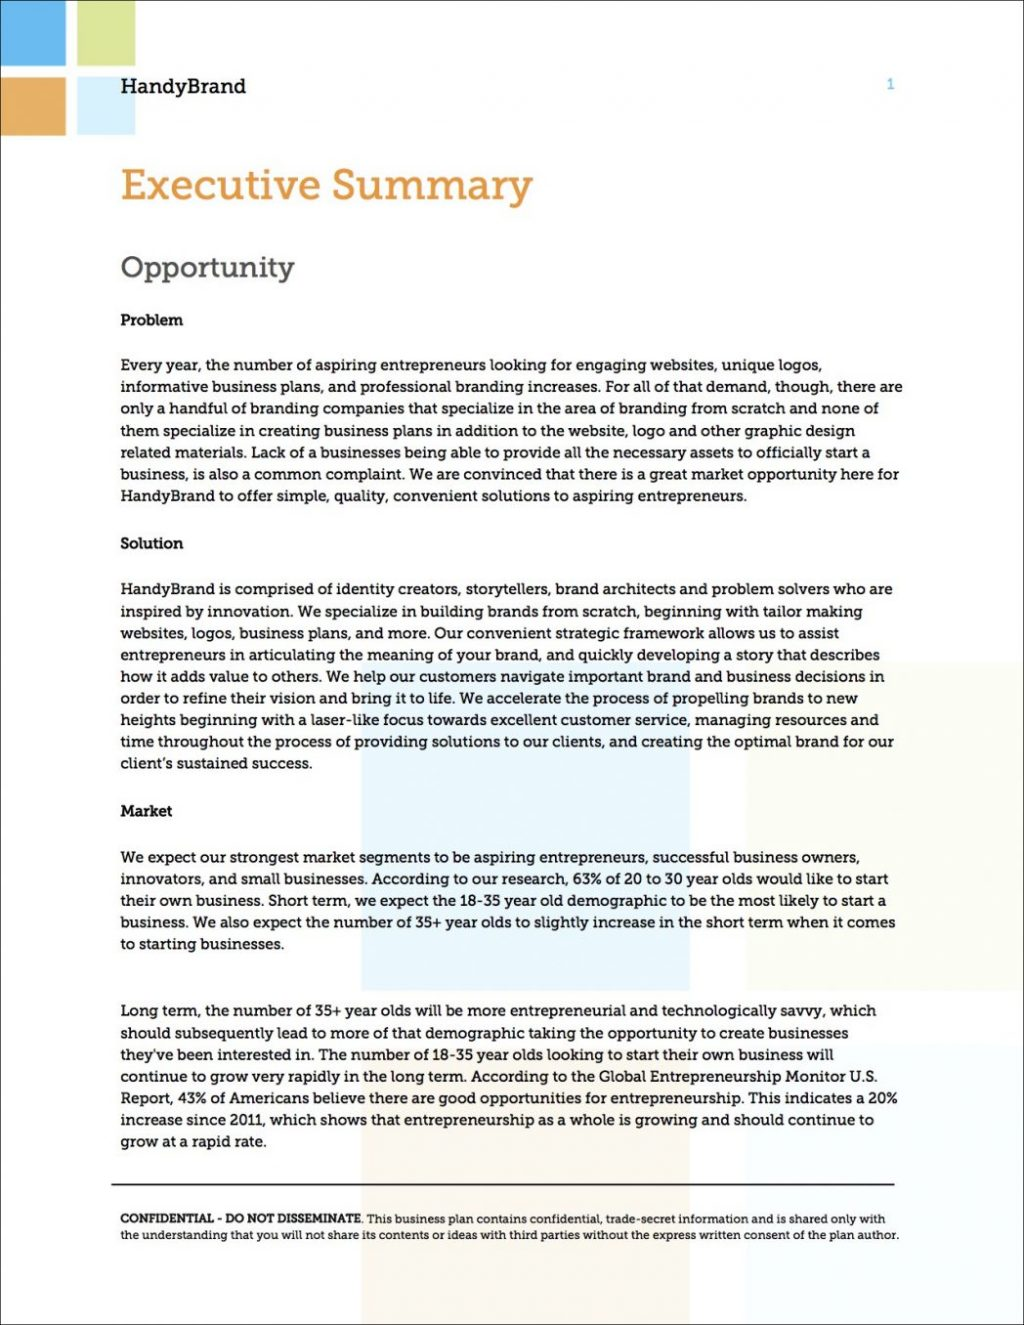 executive summary for research plan example